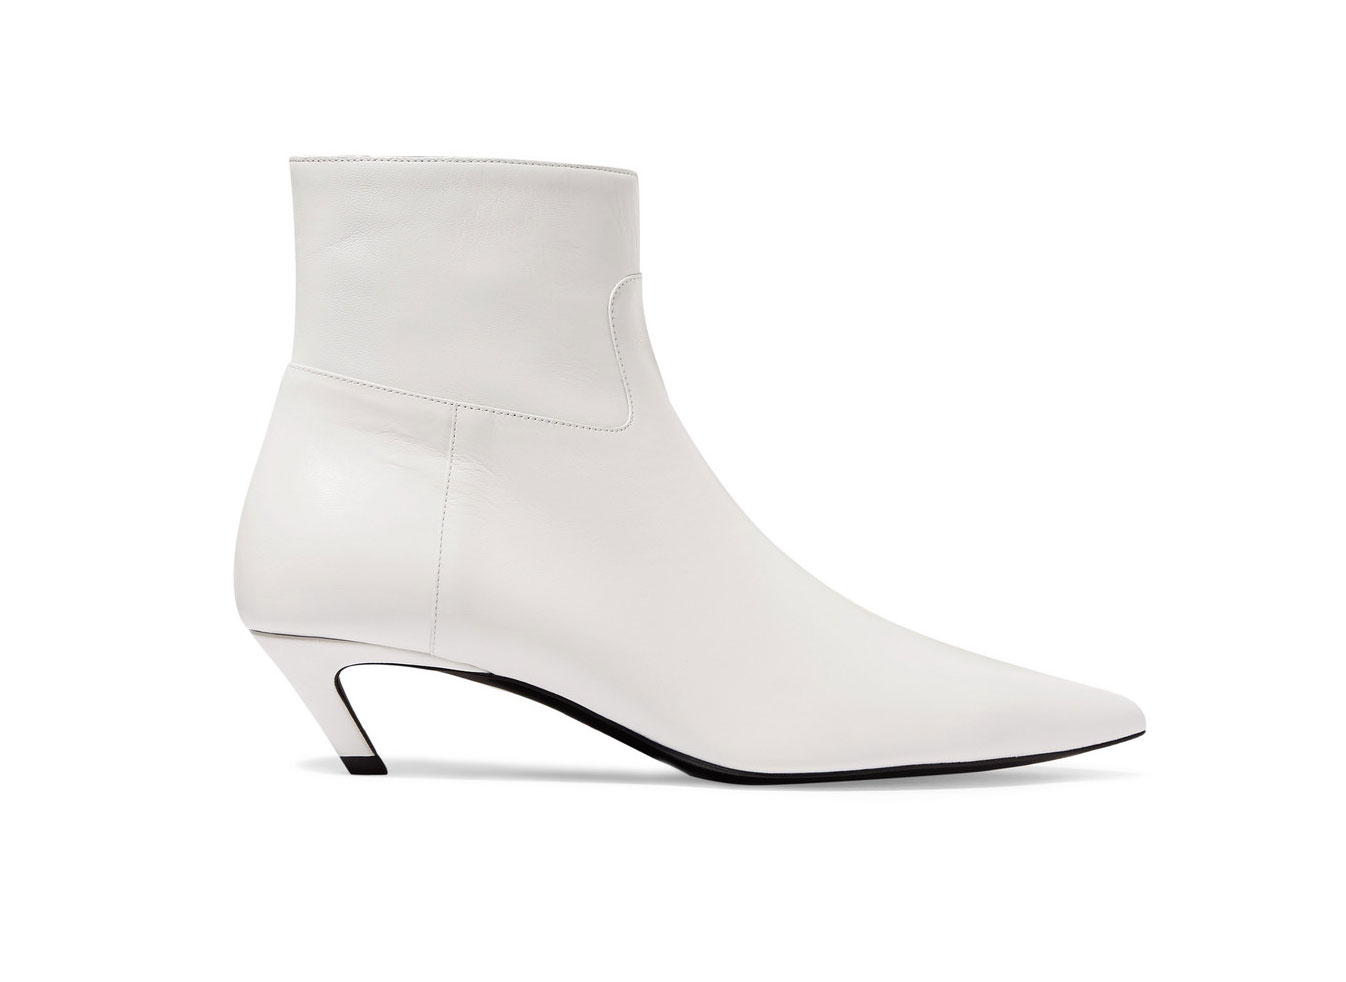 Balenciaga Talon Slash Leather Ankle Boots